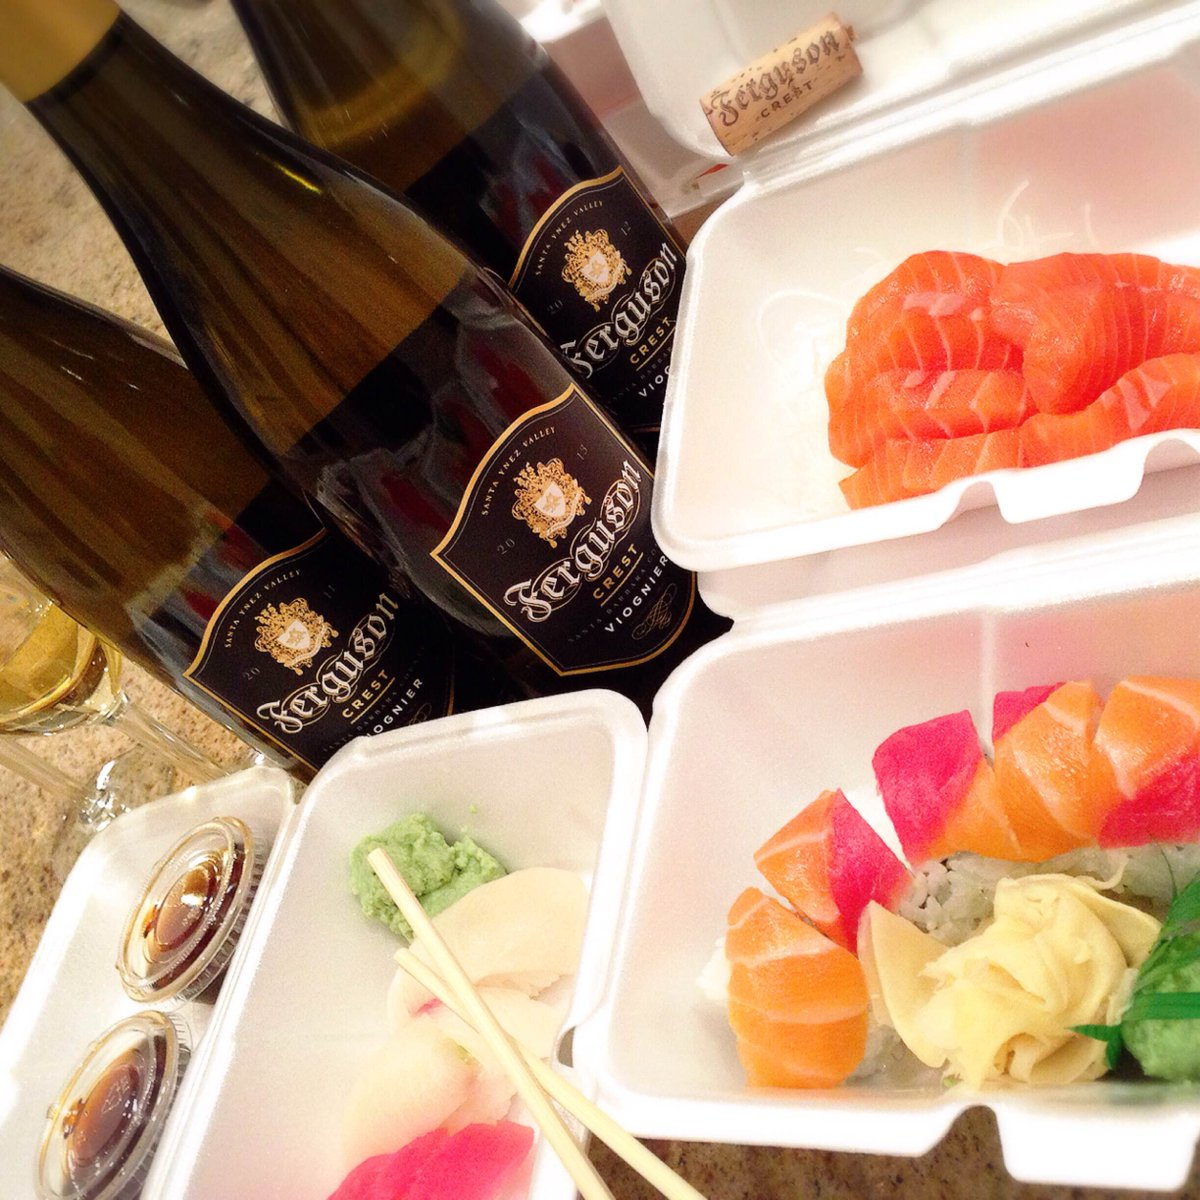 RT @FergusonCrest: #Sushi & #wine #goinuponaTuesday…#thisishowweroll.????????????#fergusoncrest #fergie  #takeouttuesday https://t.co/hTYixLRndS htt…